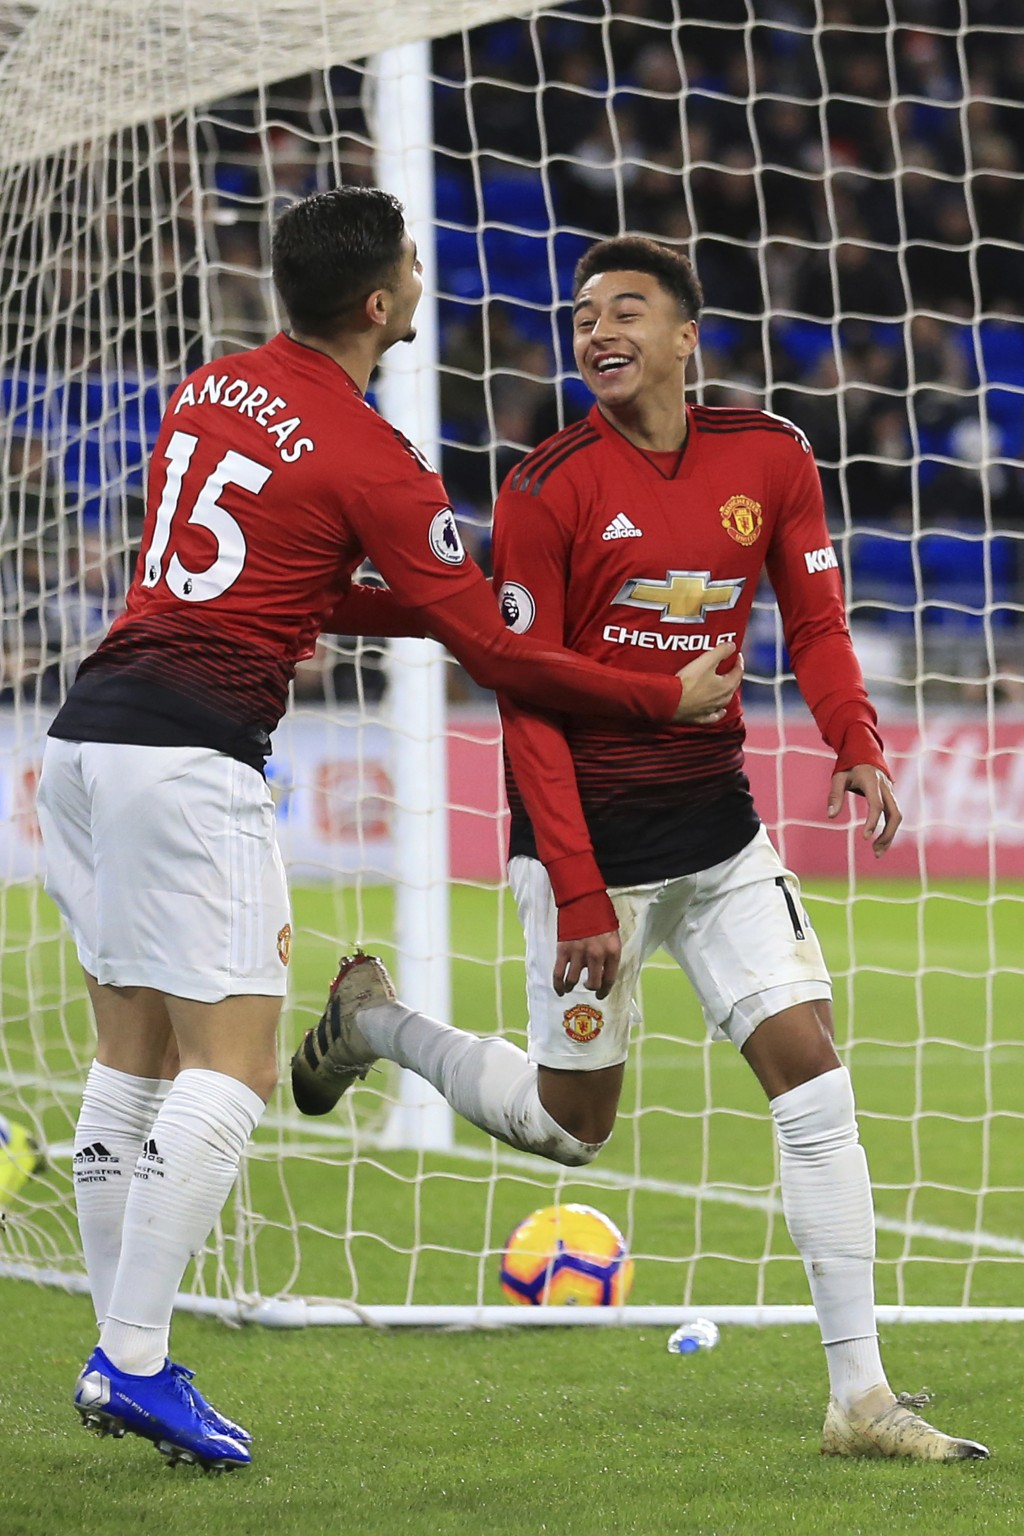 Manchester United midfielder Jesse Lingard, right, and his teammate midfielder Andreas Pereira celebrated together his goal against Cardiff City durin...